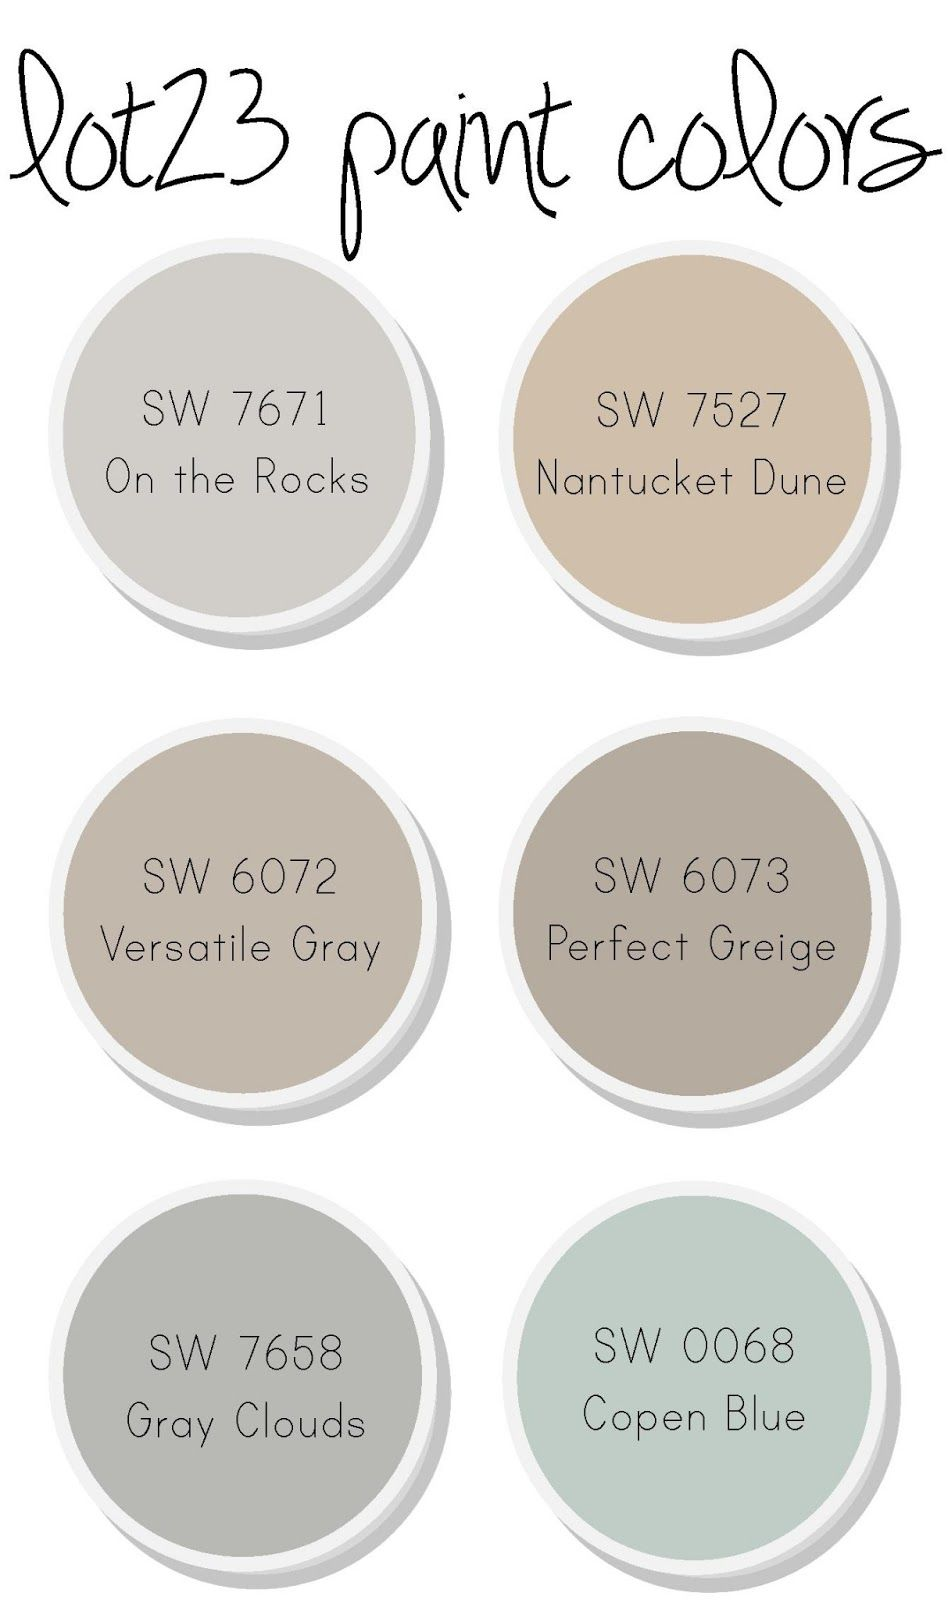 Whole House Interior Paint Colors (master Bedroom, Main Bath, Bedroom,  Master Bathroom